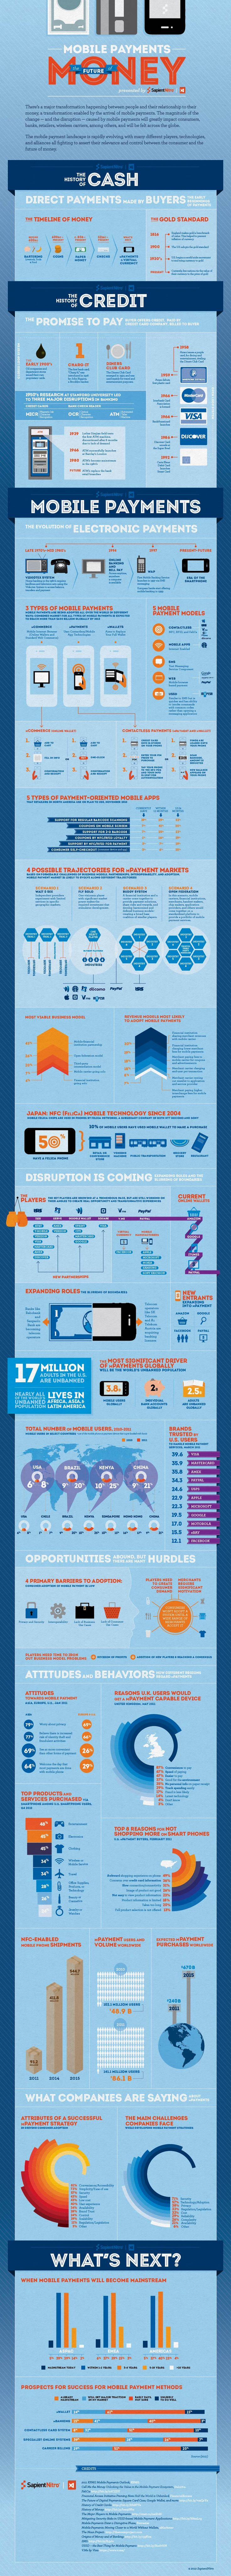 #infographic --> the #mobile payment landscape is rapidly evolving... here's a look at the future of money (by @Mashable)